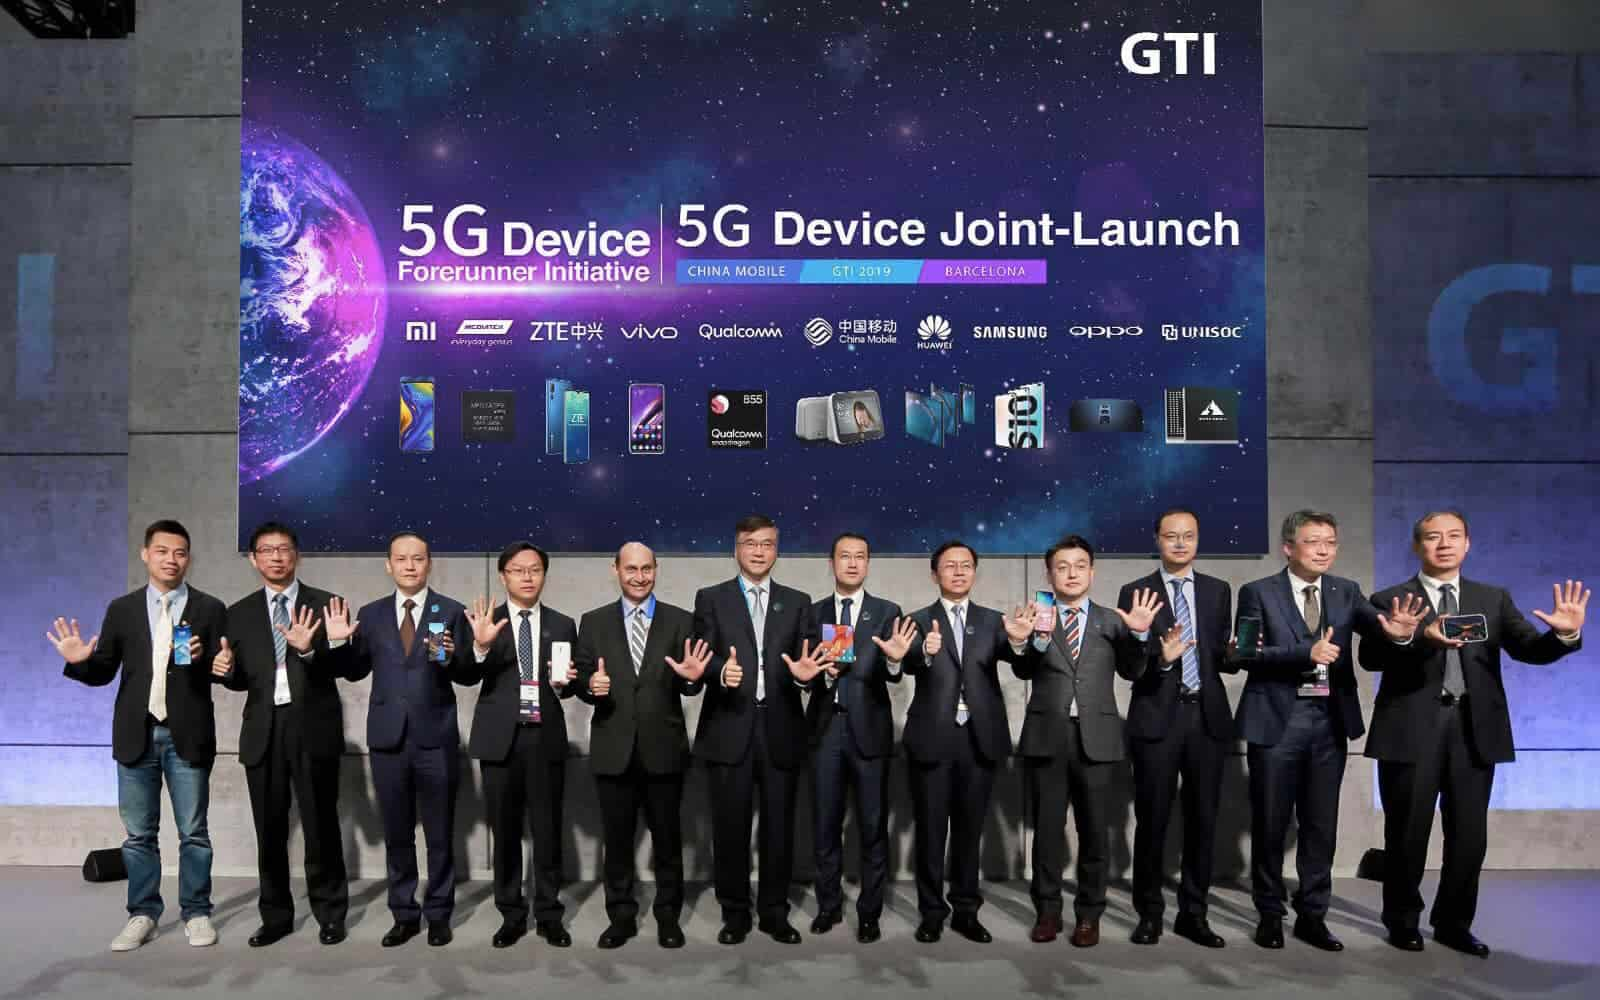 5G Device Forerunner Initiative press img from businesswire china 5G story